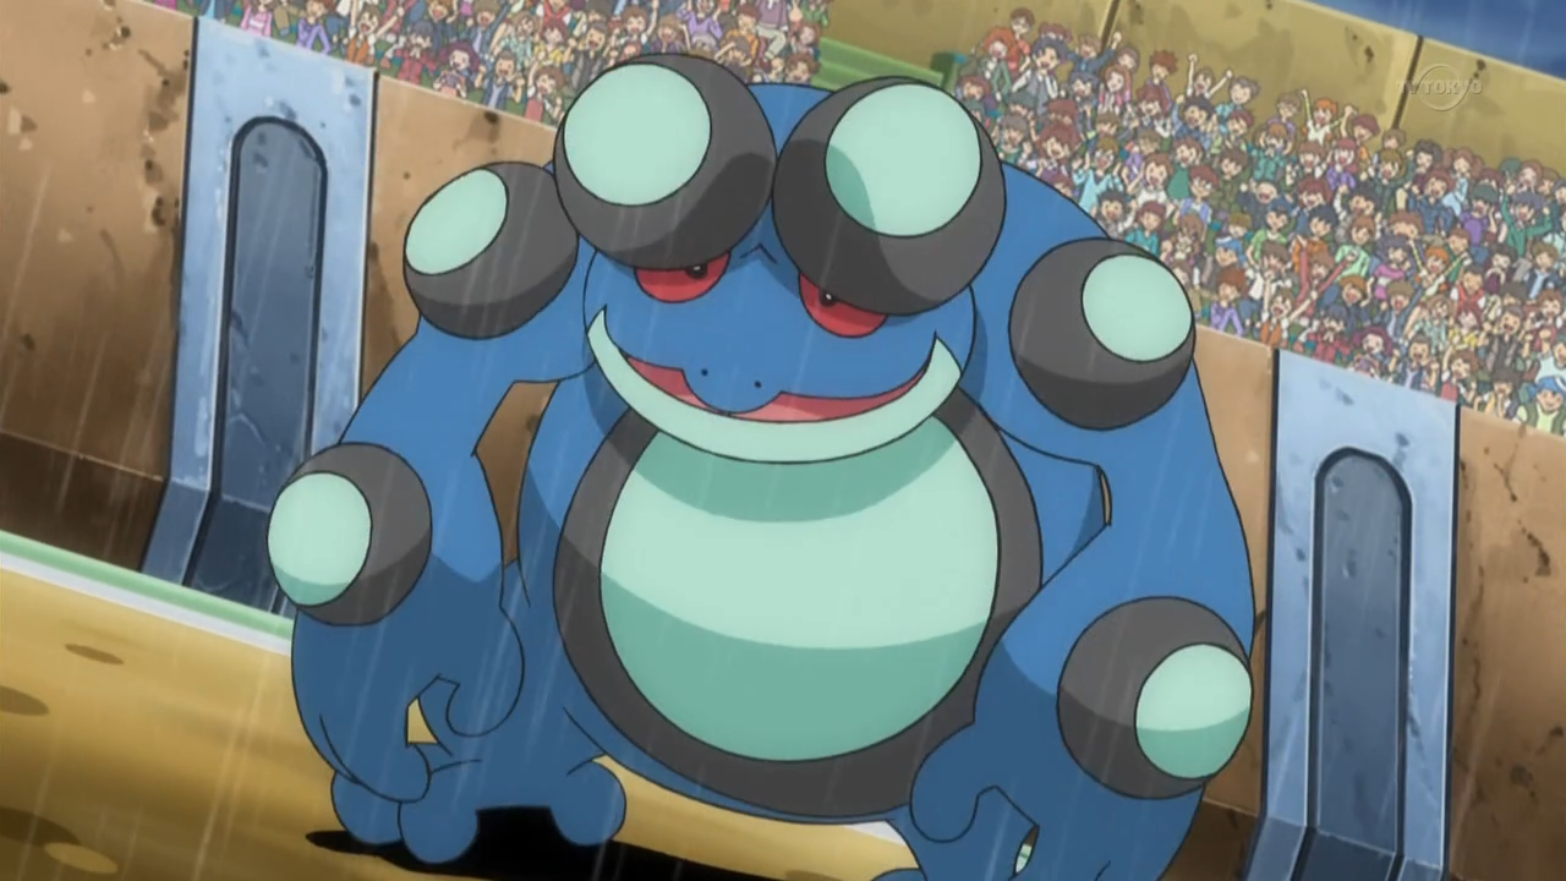 Edmund sent Seismitoad to battle Sawk. Seismitoad tried to empower itself using Rain Dance, but Sawk hit its legs, causing its Swift Swim ability to be neutralized and it was soon defeated.